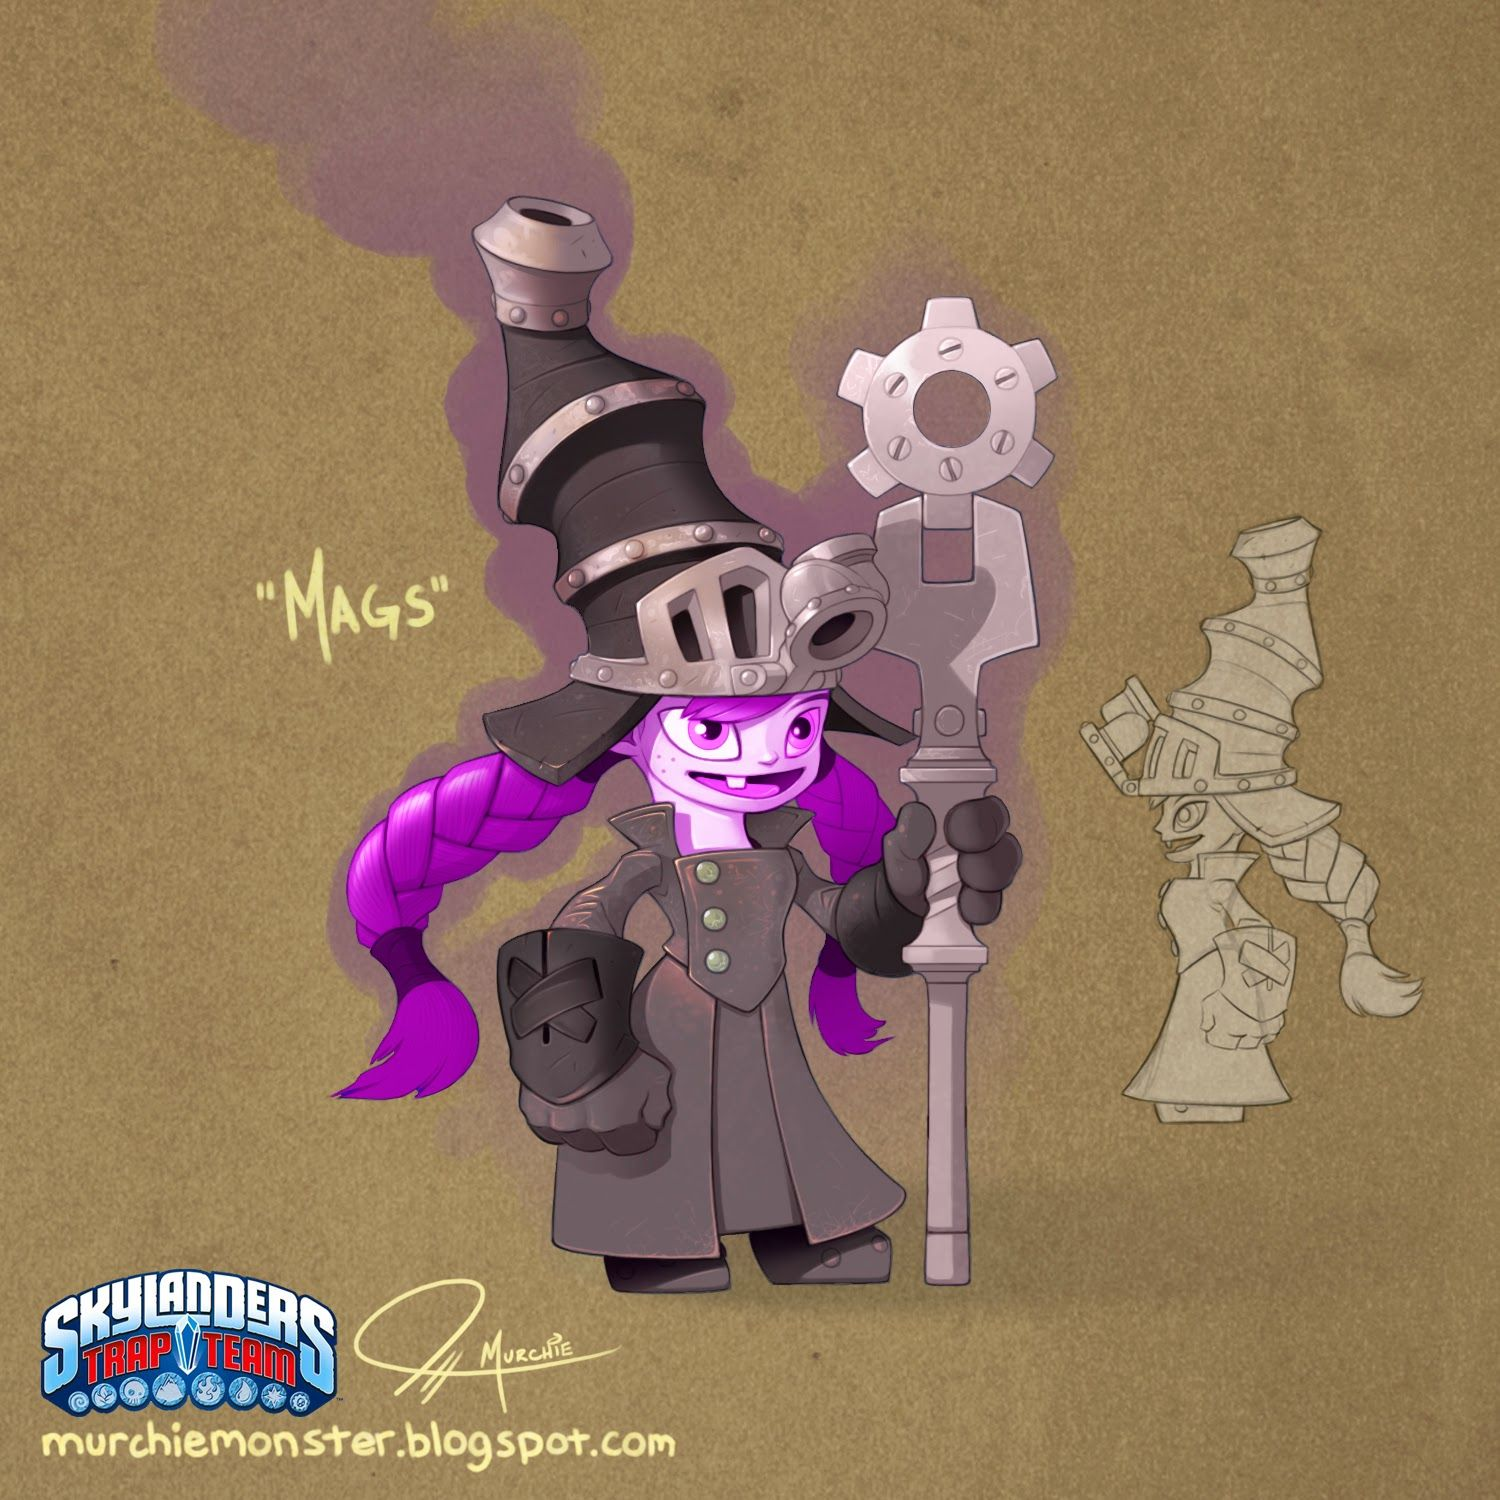 Skylanders Trap Team - Buzz and Mags concepts!